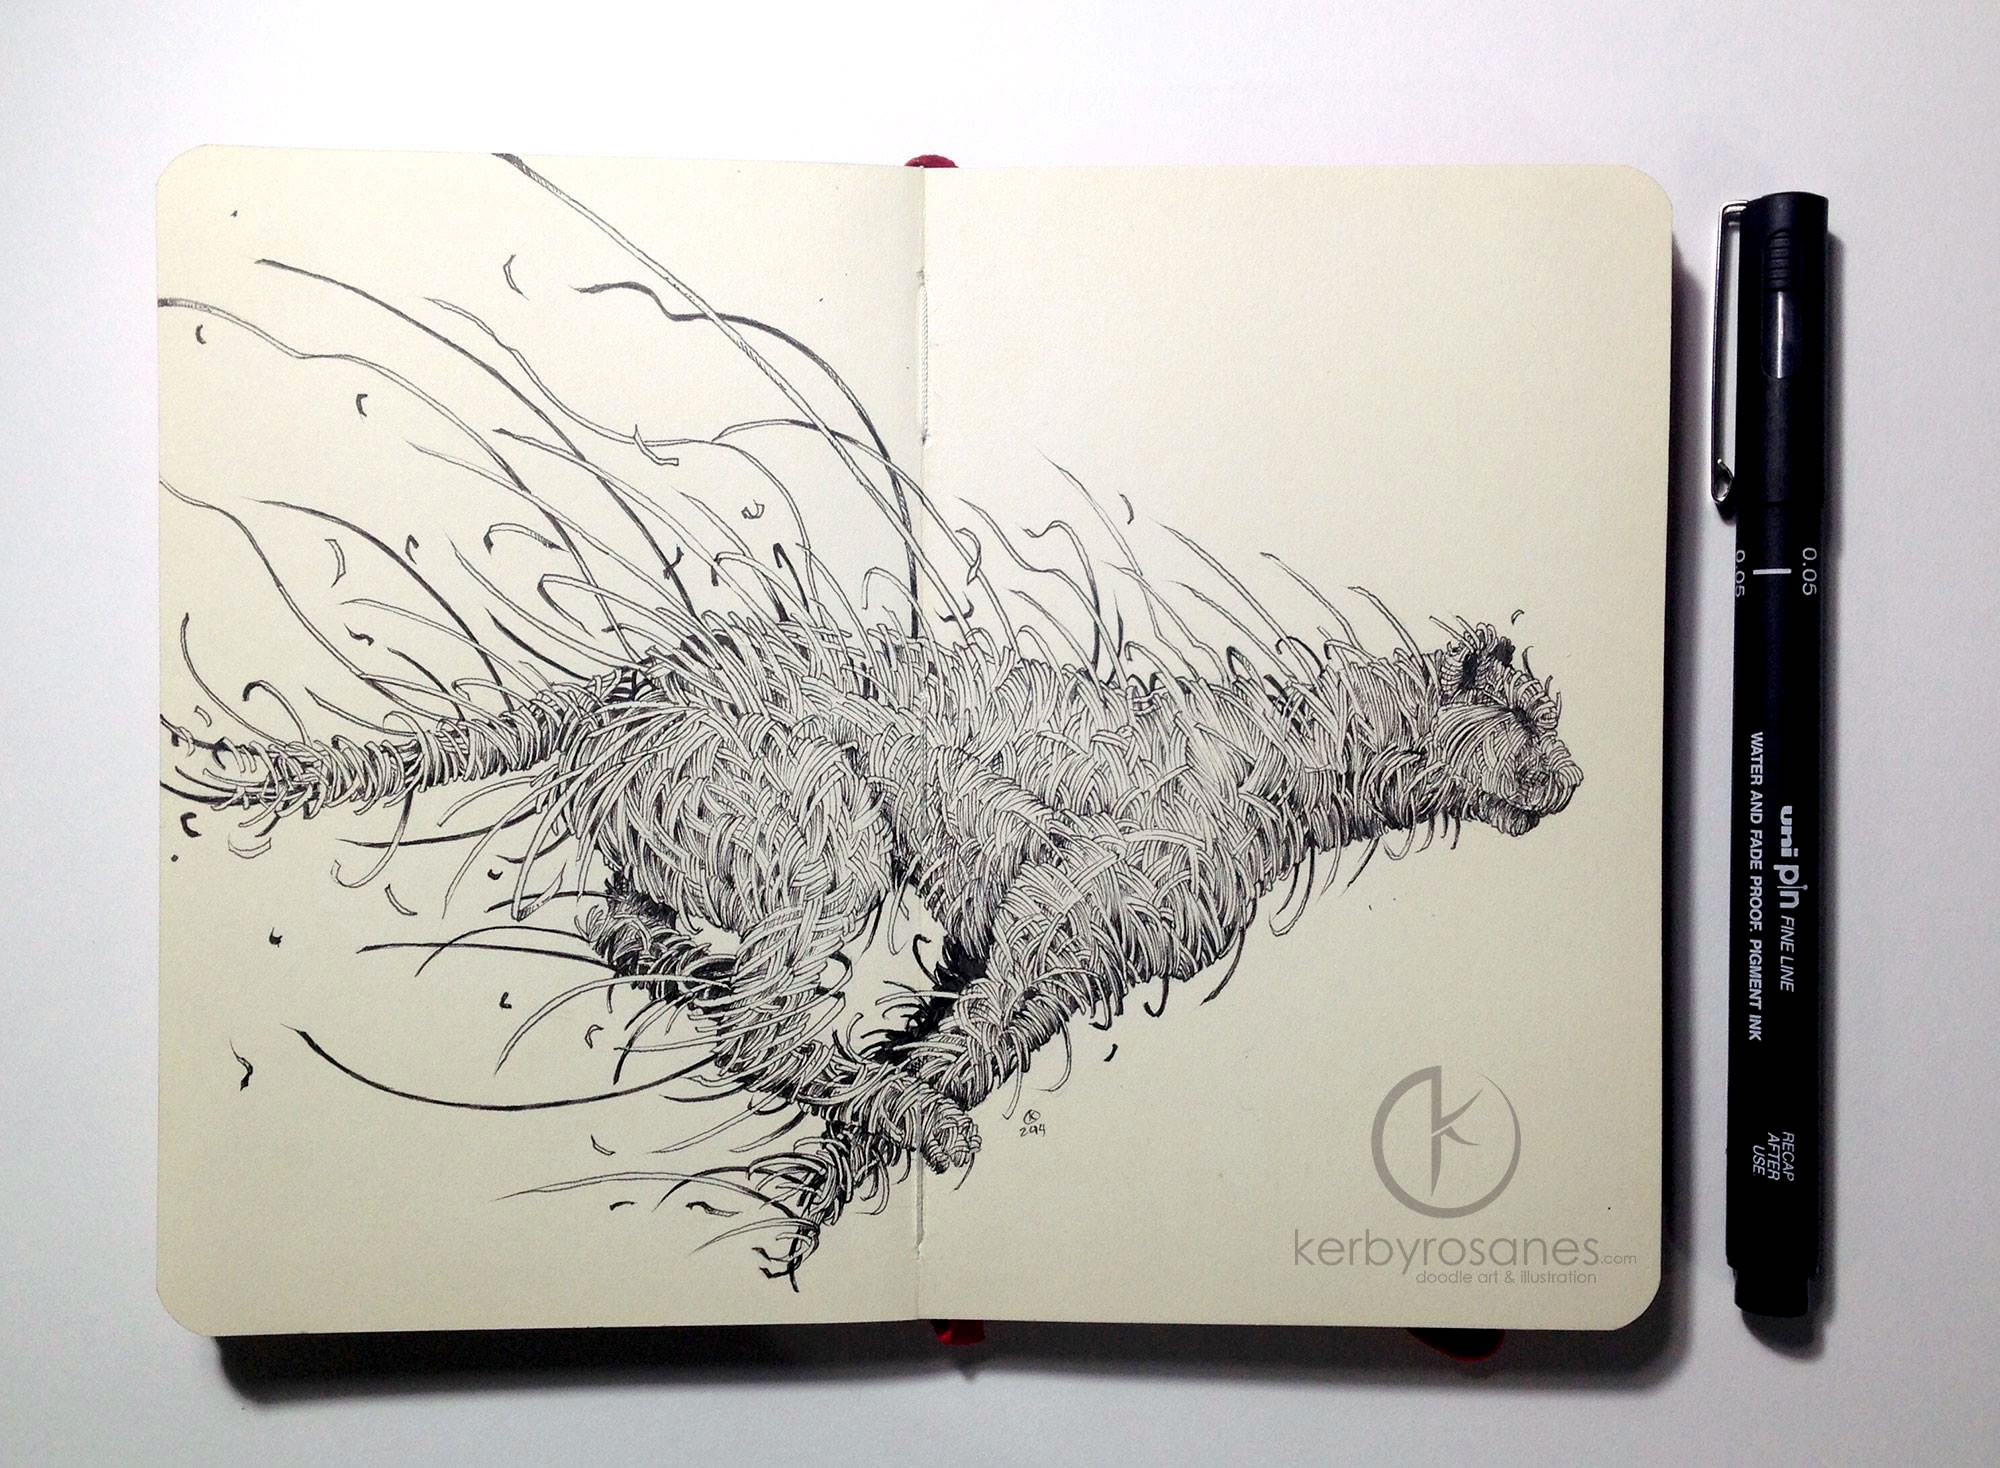 Kerby Rosanes' Sketchbook Drawings from 2014